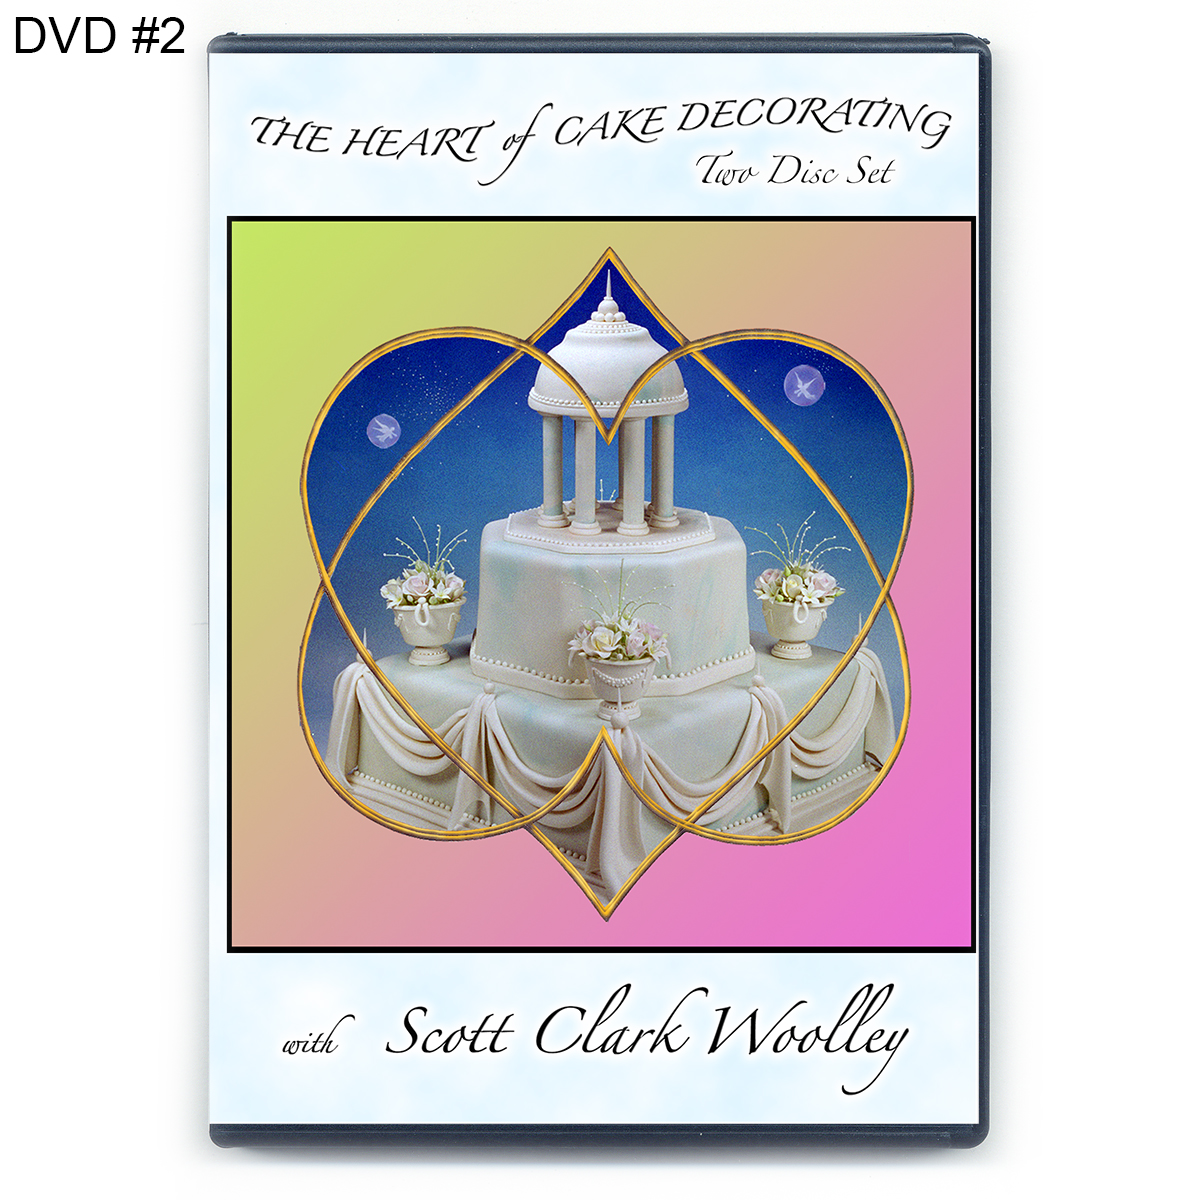 Sugar Art Cake Decorating : DVD#2   The Heart of Cake Decorating   World of Sugar Art